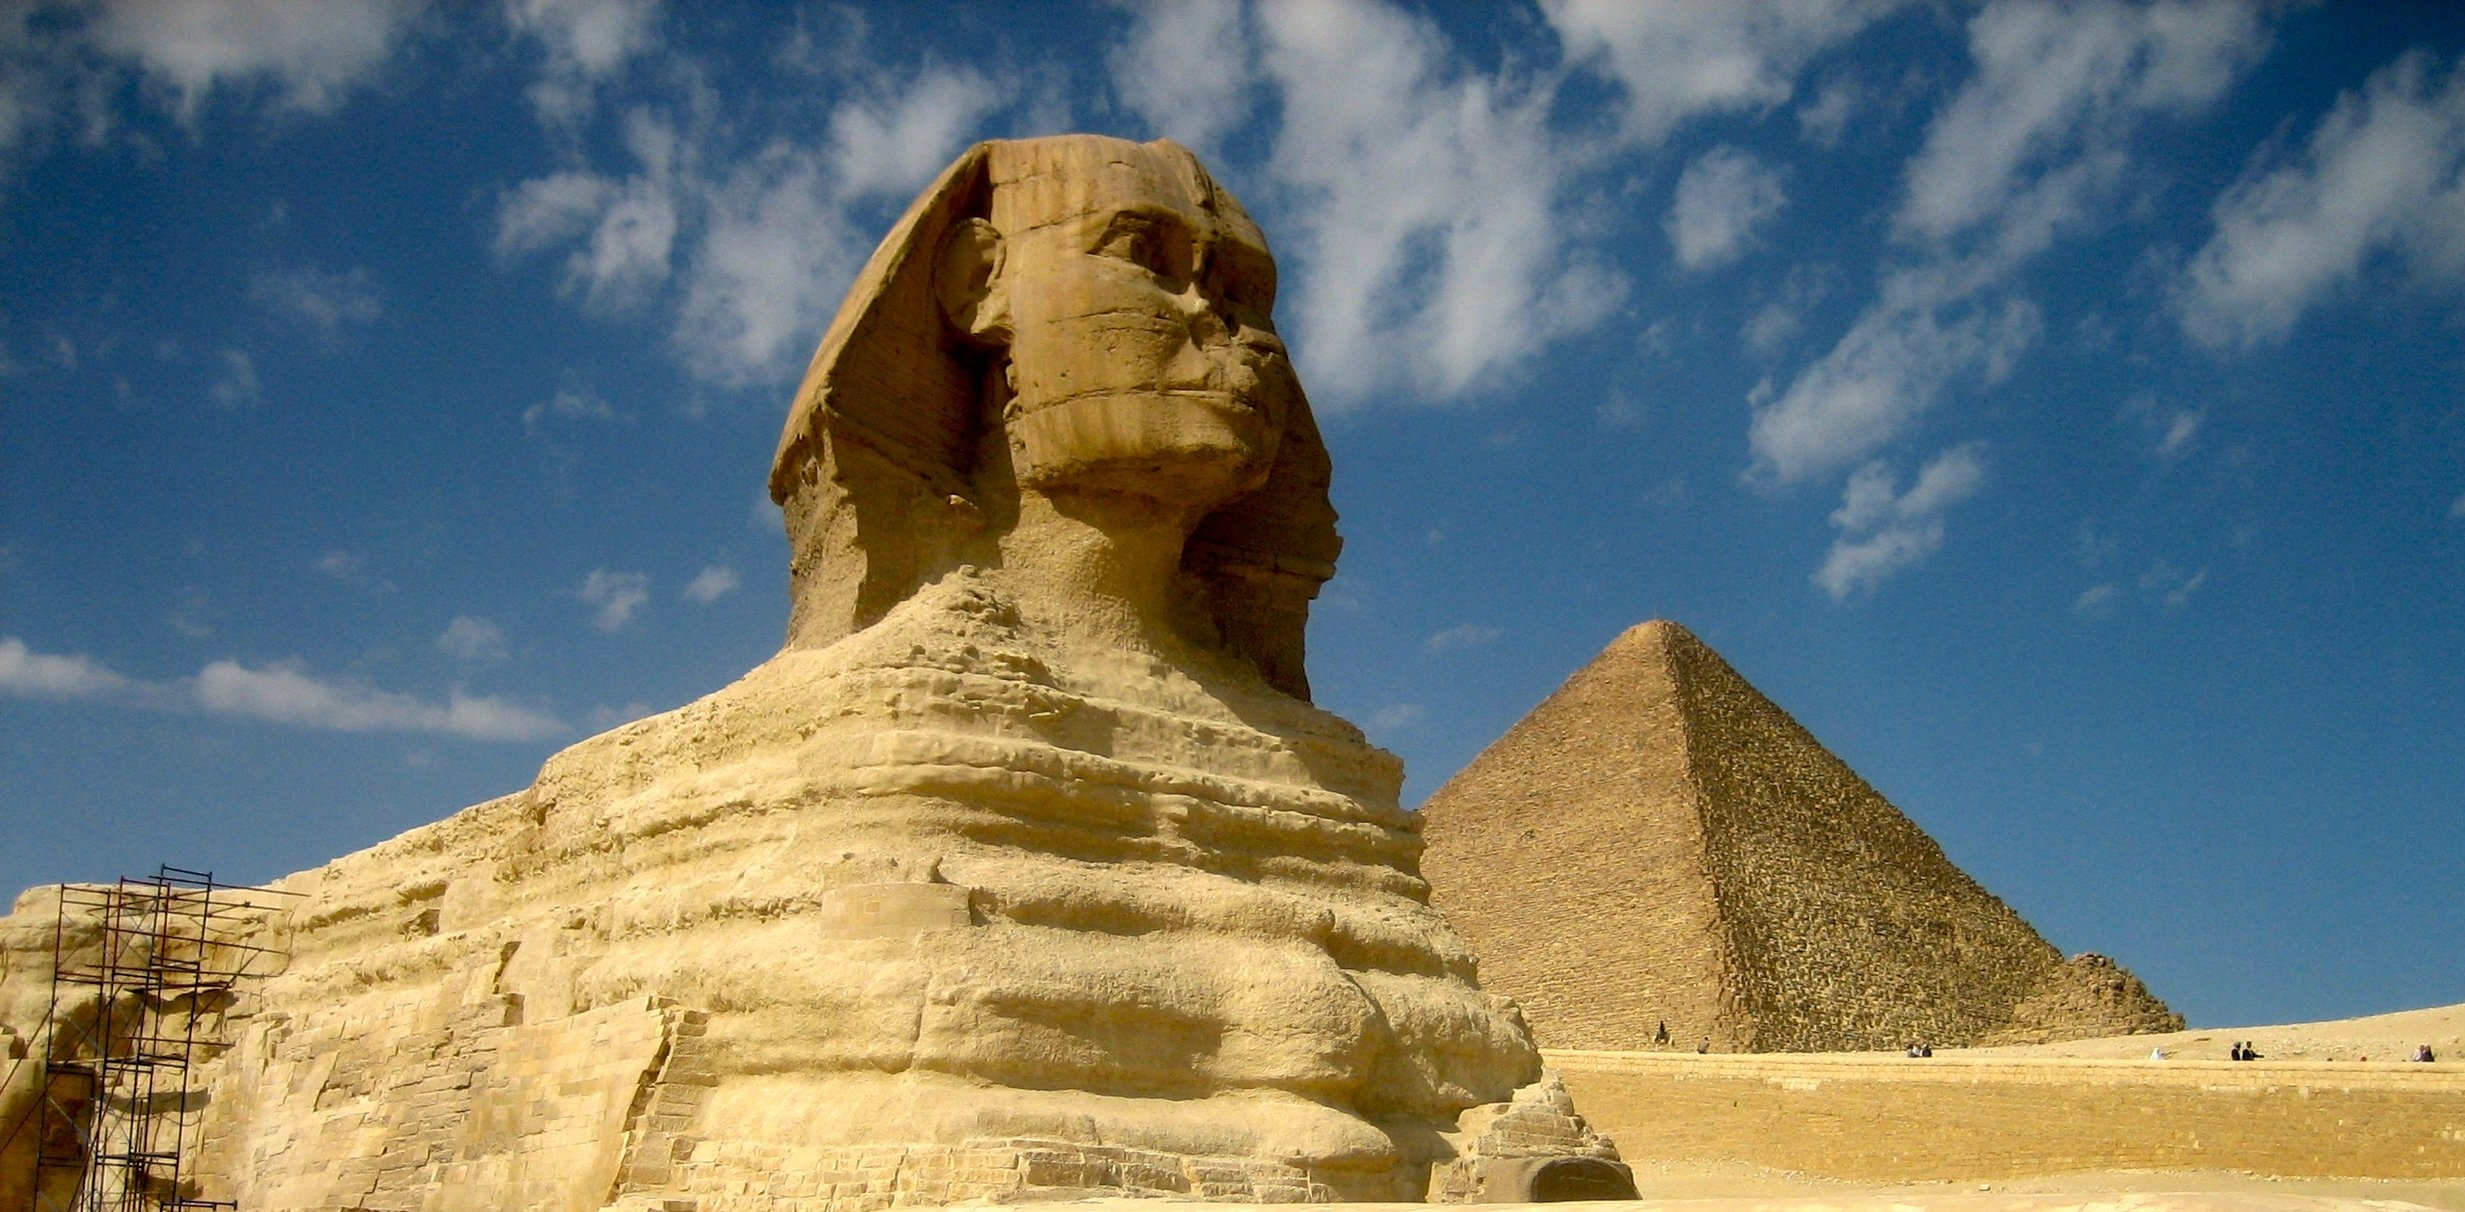 Day 7 (continued): - We visit the grandeur in the King's Chamber of the Great Pyramid and the Sphinx.